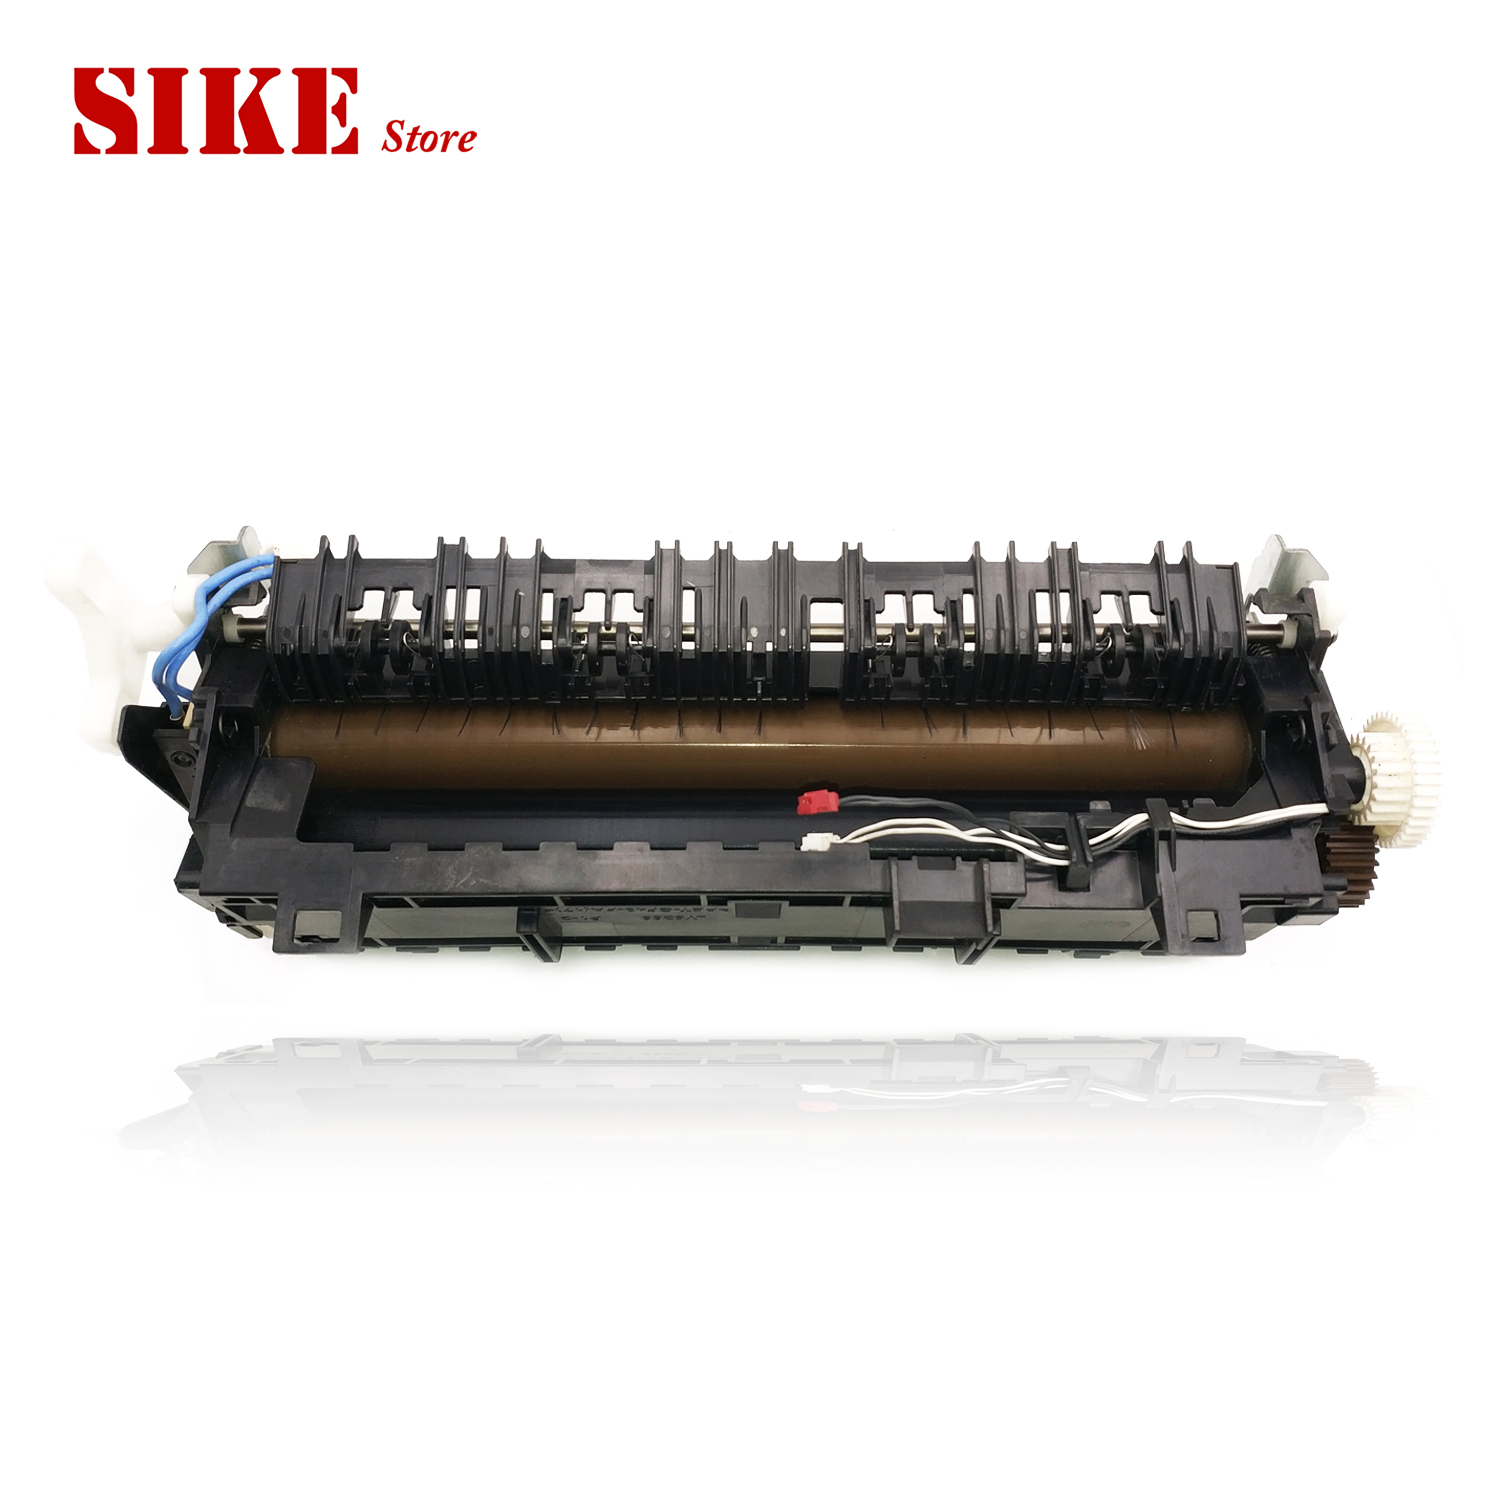 Fuser Unit Assy For Brother MFC-8910DW MFC-8912DW MFC-8950DW MFC-8952DW MFC 8910 8912 8950 Fuser Assembly LY5610001 LU9215001Fuser Unit Assy For Brother MFC-8910DW MFC-8912DW MFC-8950DW MFC-8952DW MFC 8910 8912 8950 Fuser Assembly LY5610001 LU9215001